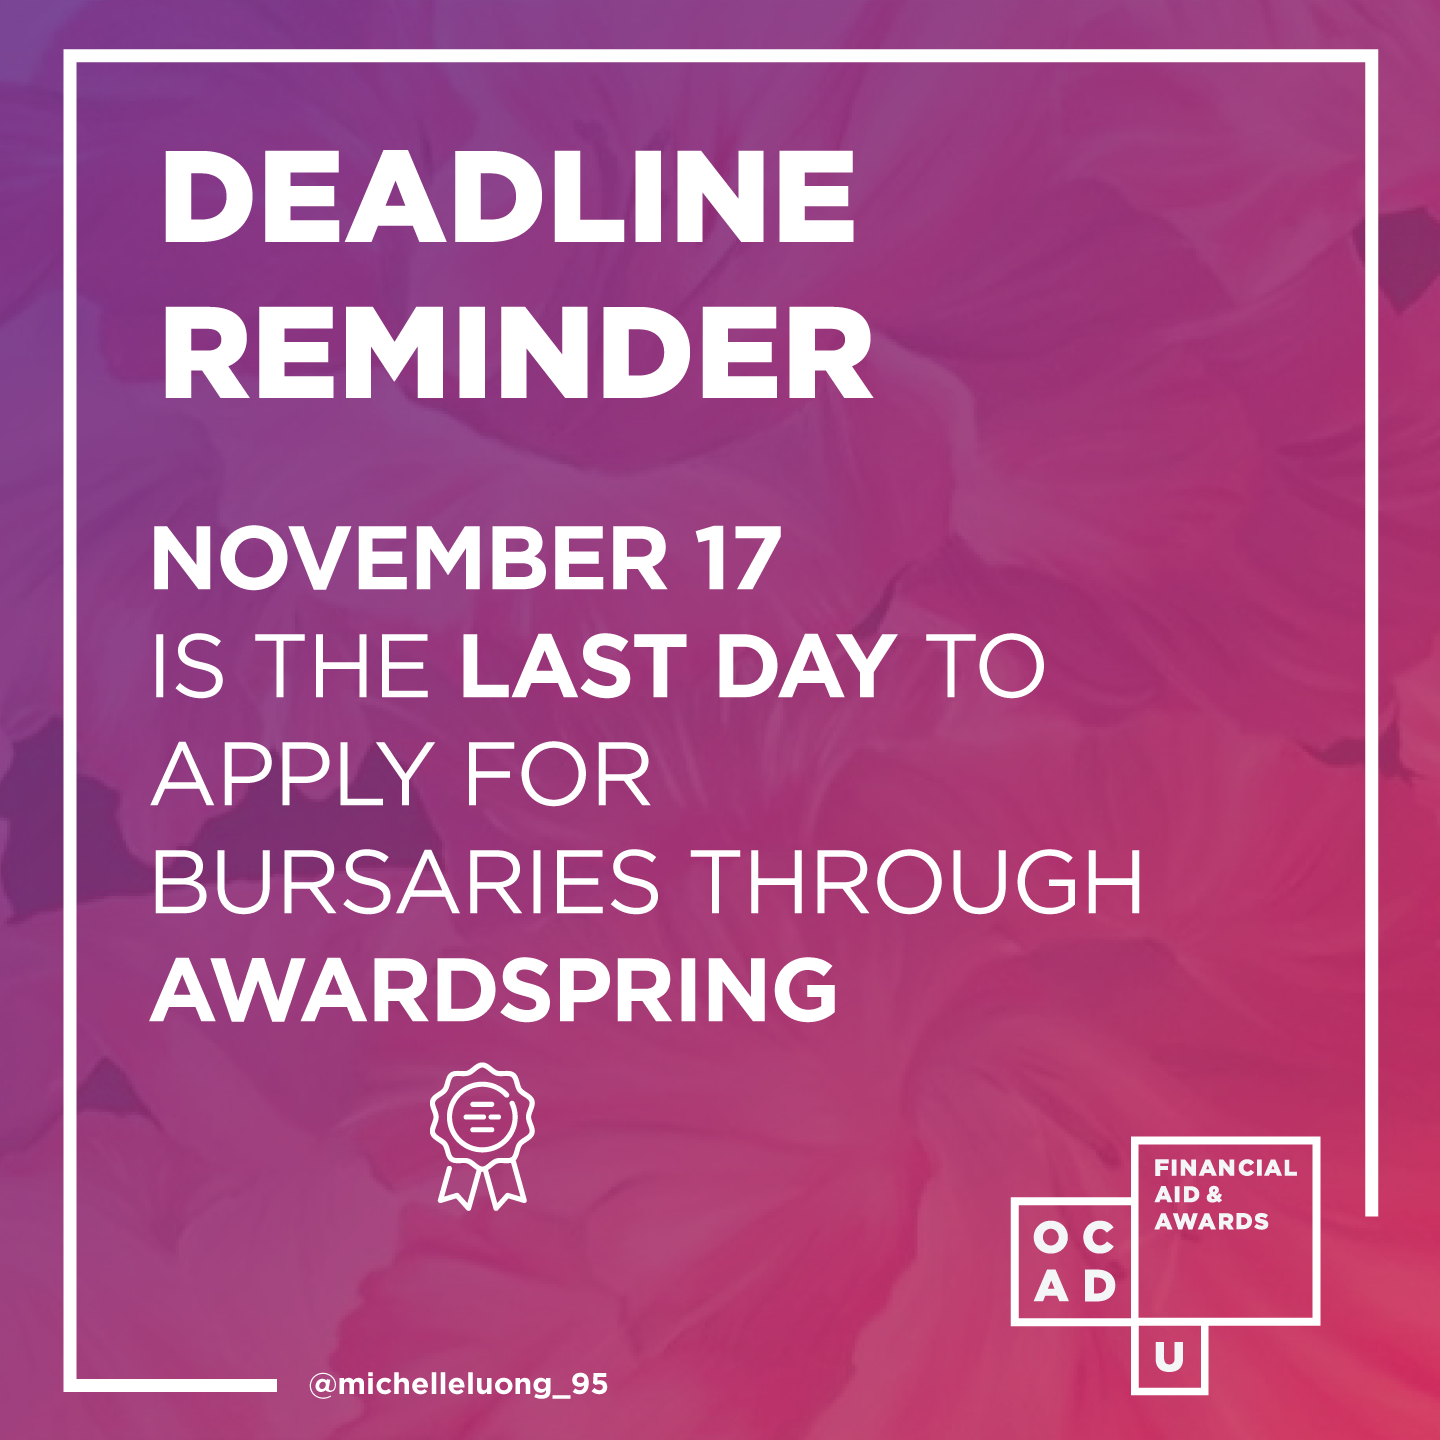 Deadline Reminder.  November 17 is the last day to apply for bursaries through AwardSpring